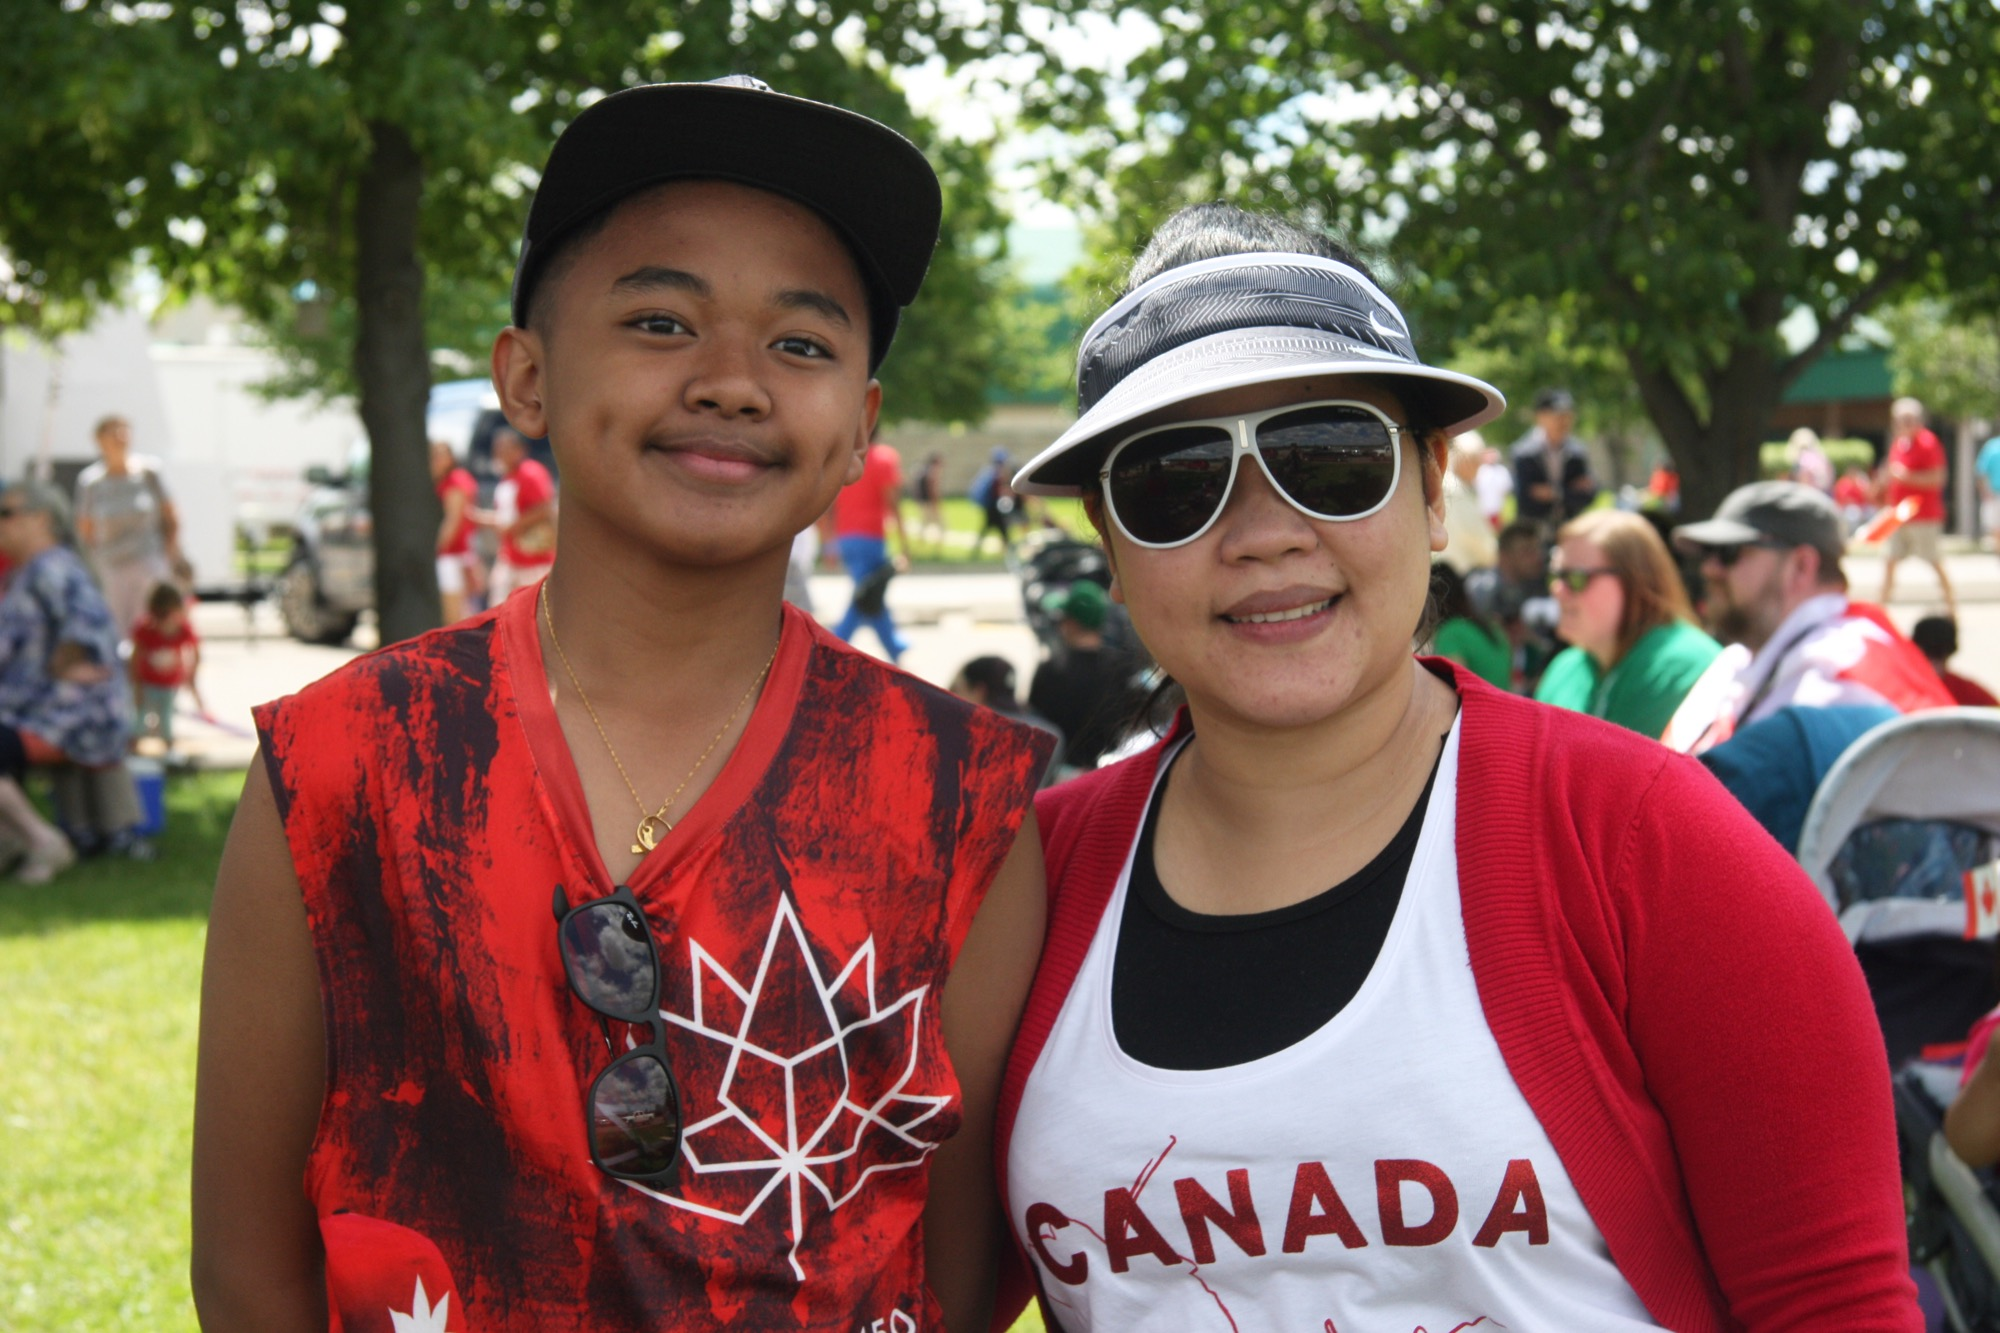 France Daniel Francisco and his mother, Jannette Francisco, attend the Canada 150 celebrations at the Riverbank Discovery Centre on Saturday. Originally from the Philippines, the family immigrated to Canada a year and a half ago from Singapore.